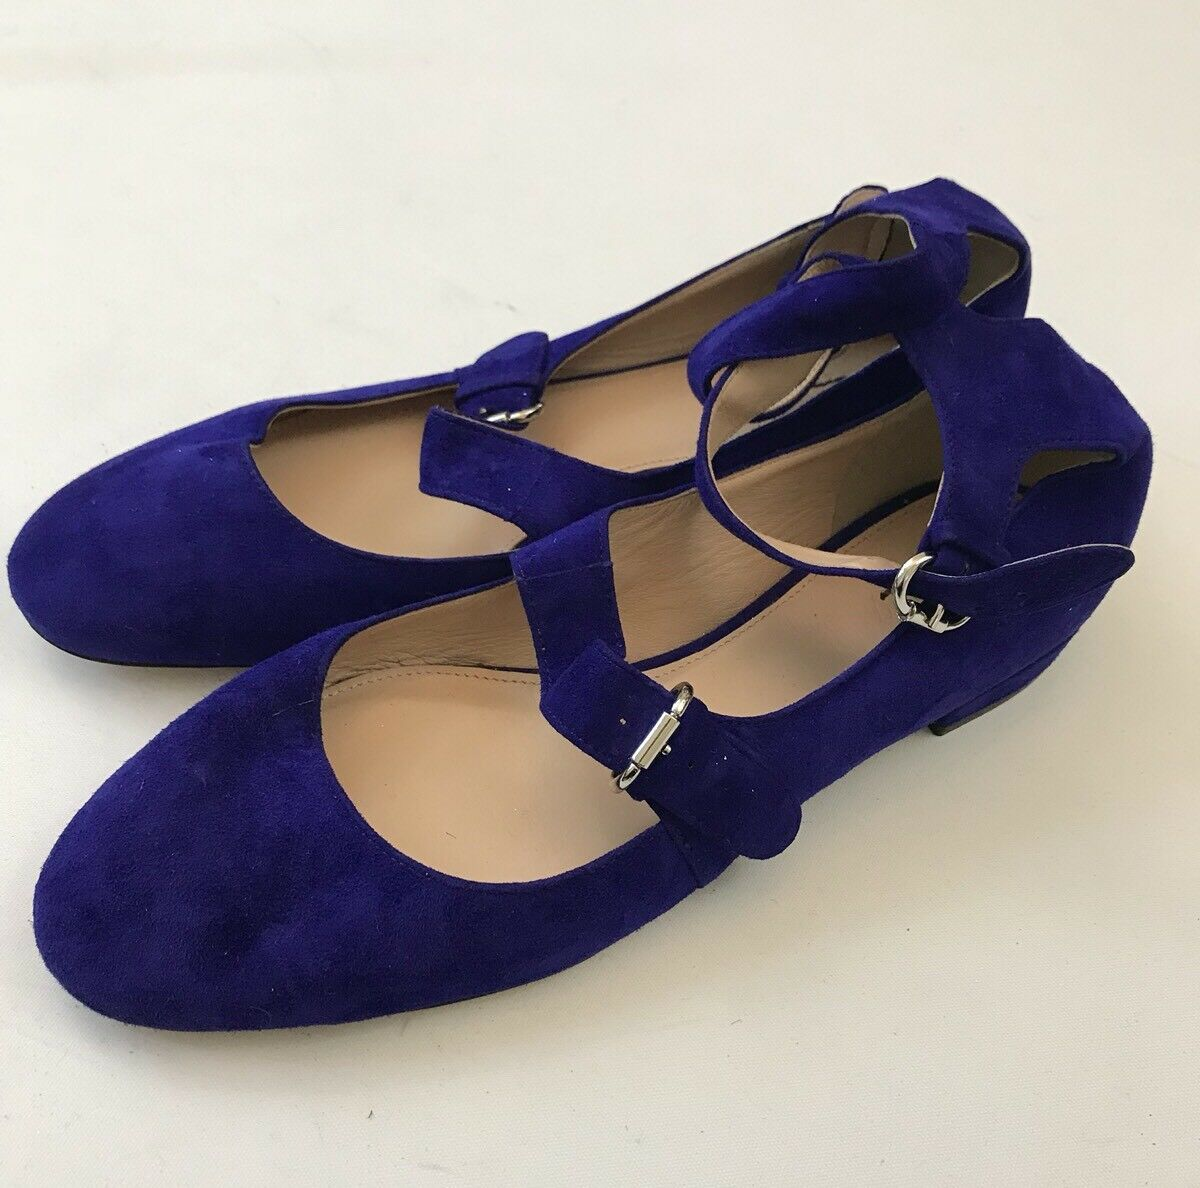 NEW J.Crew  Suede Purple bluee Ankle Strap Flats shoes sz 7